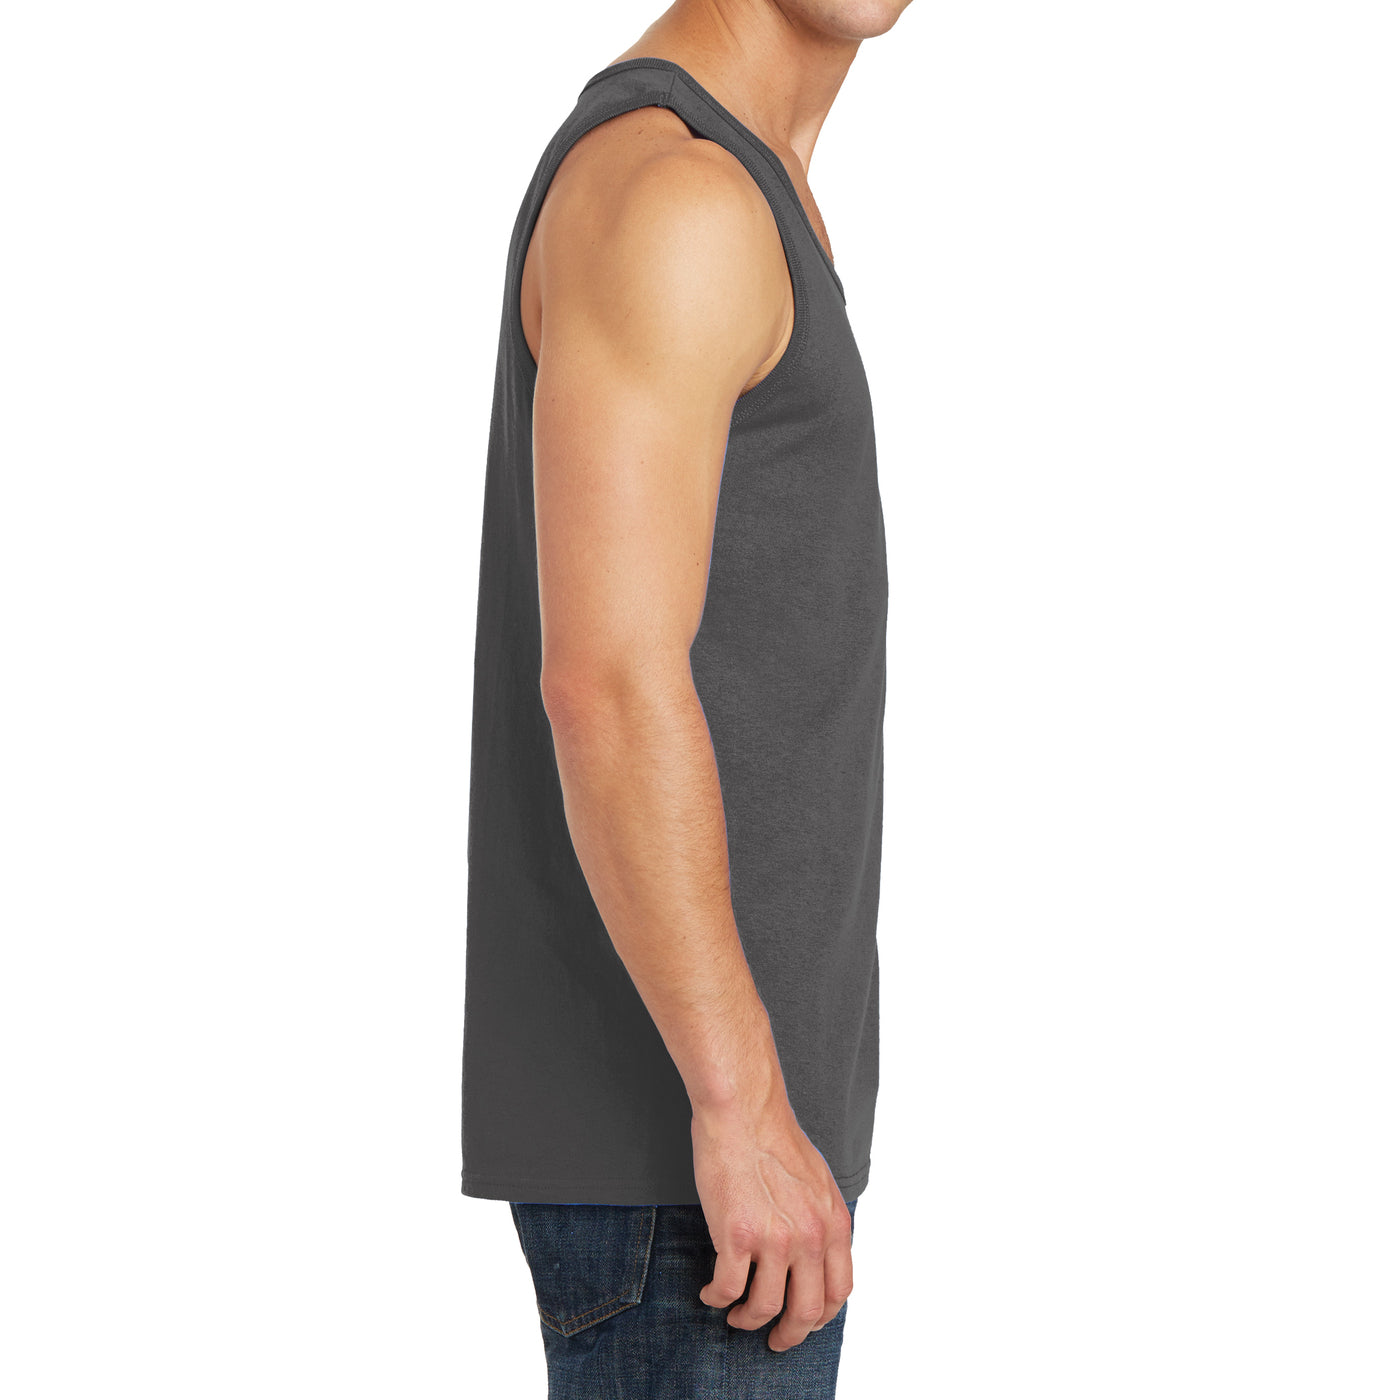 Men's Core Cotton Tank Top - Charcoal - Side